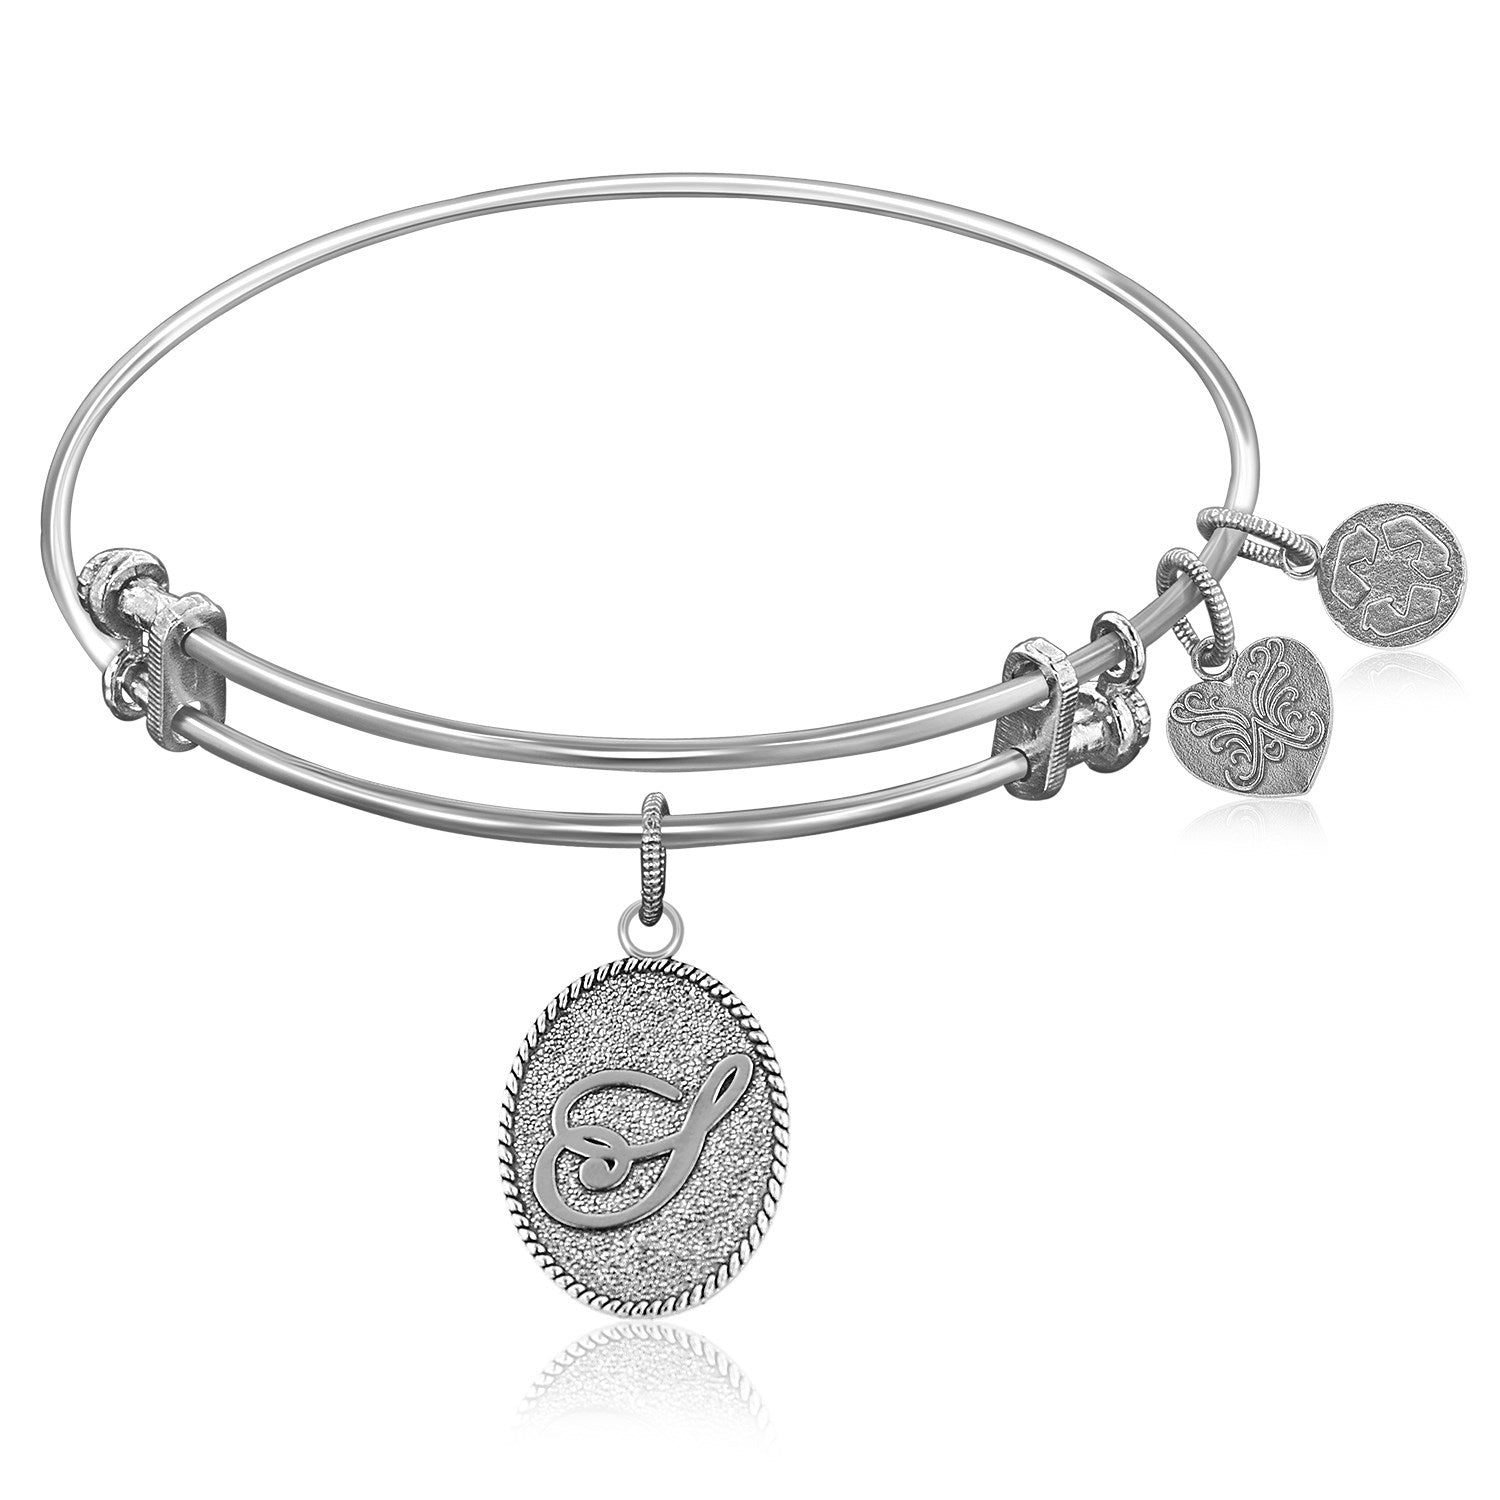 Expandable Bangle in White Tone Brass with Initial S Symbol